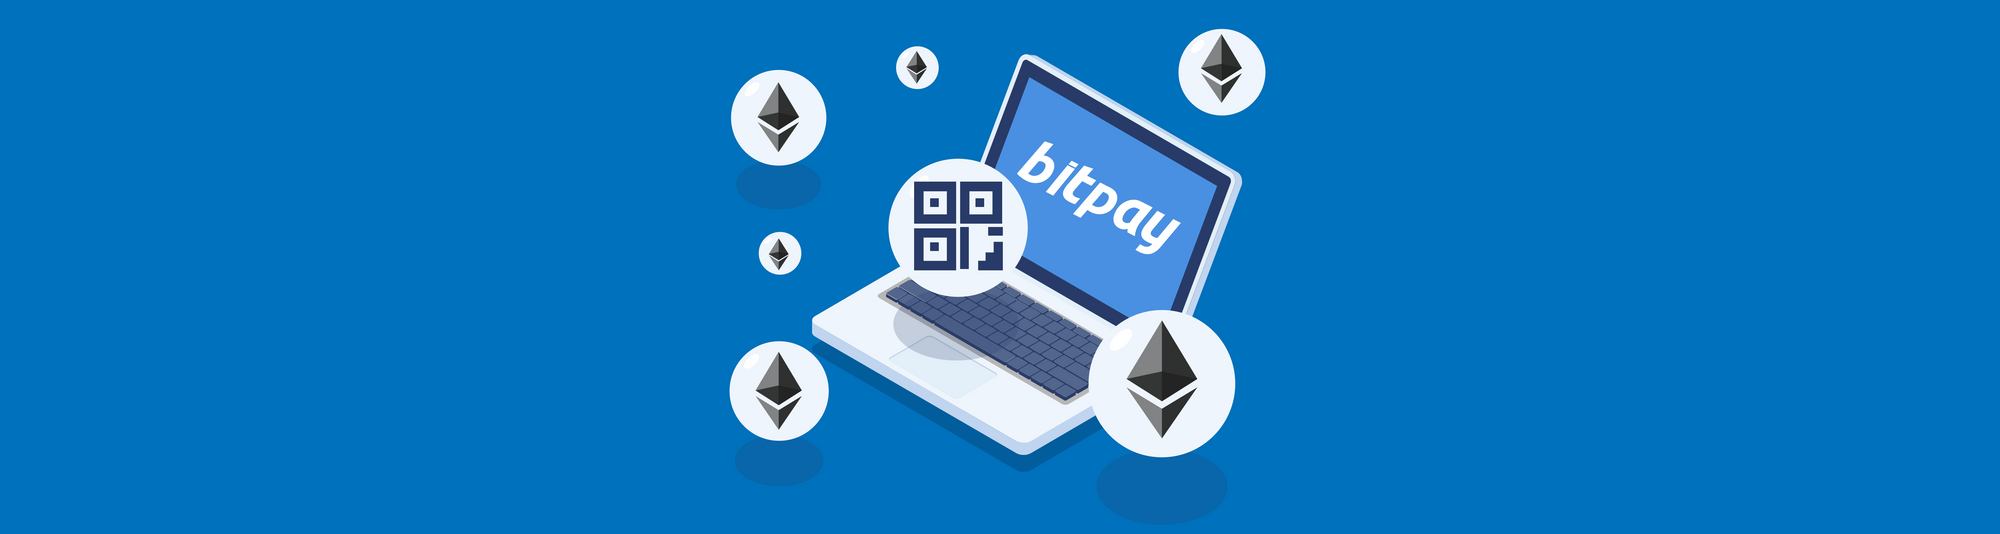 BitPay Will Soon Support Payments from the Ethereum Blockchain